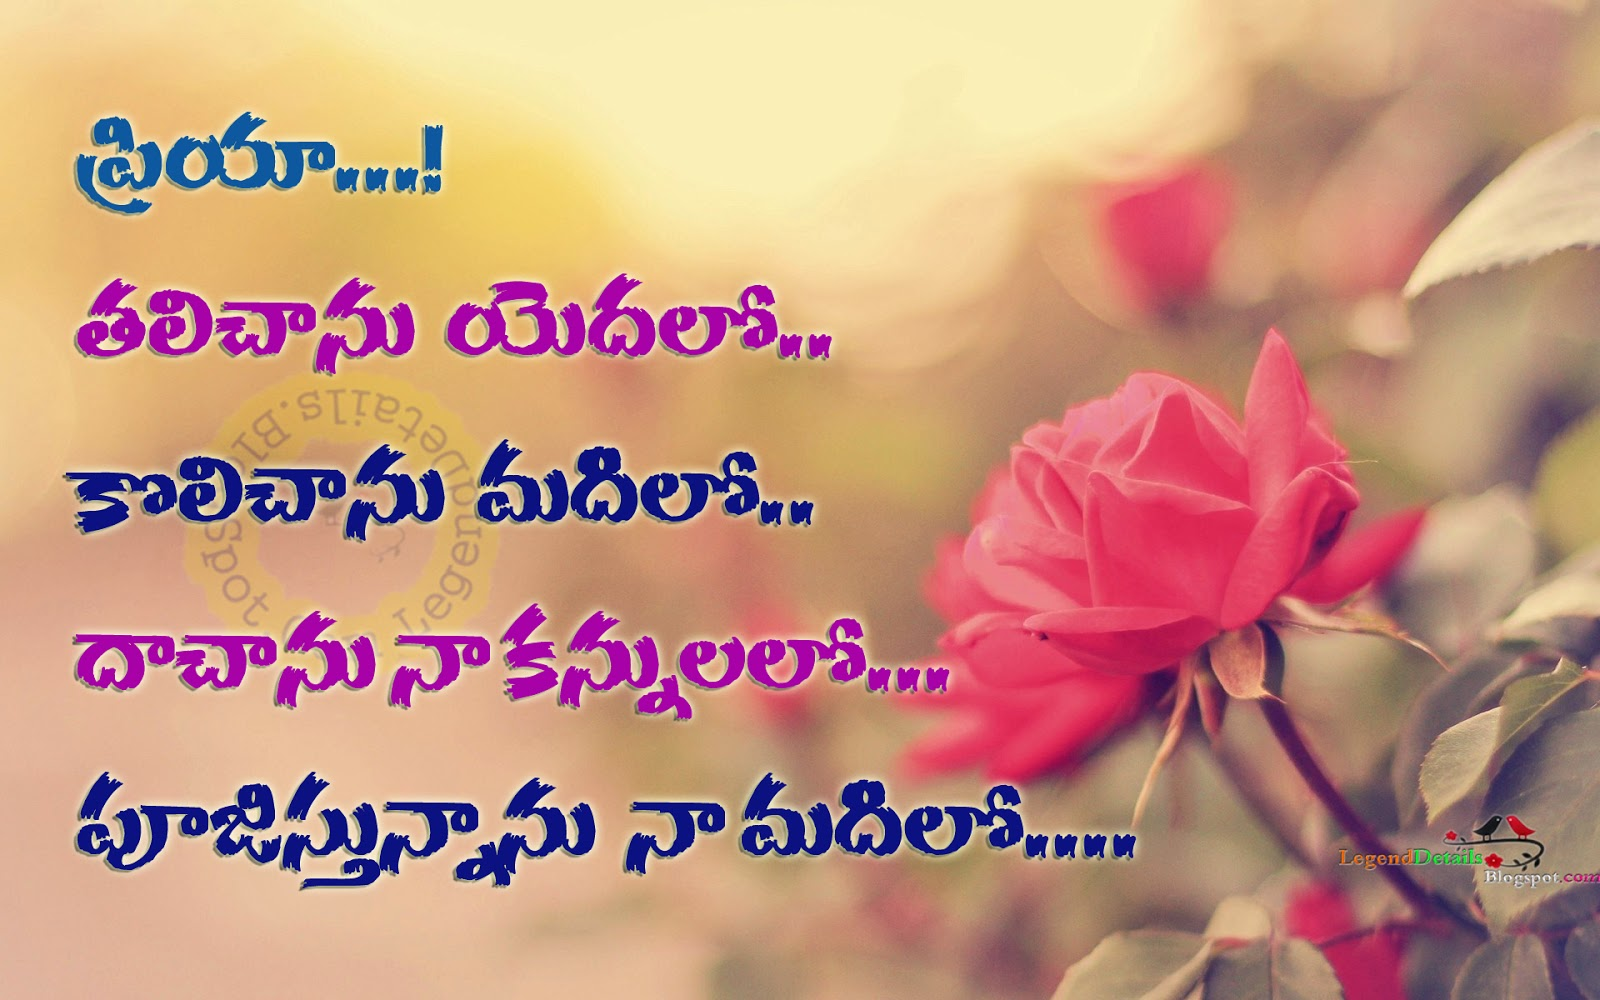 Telugu Kavithalu on Love Legendary Quotes